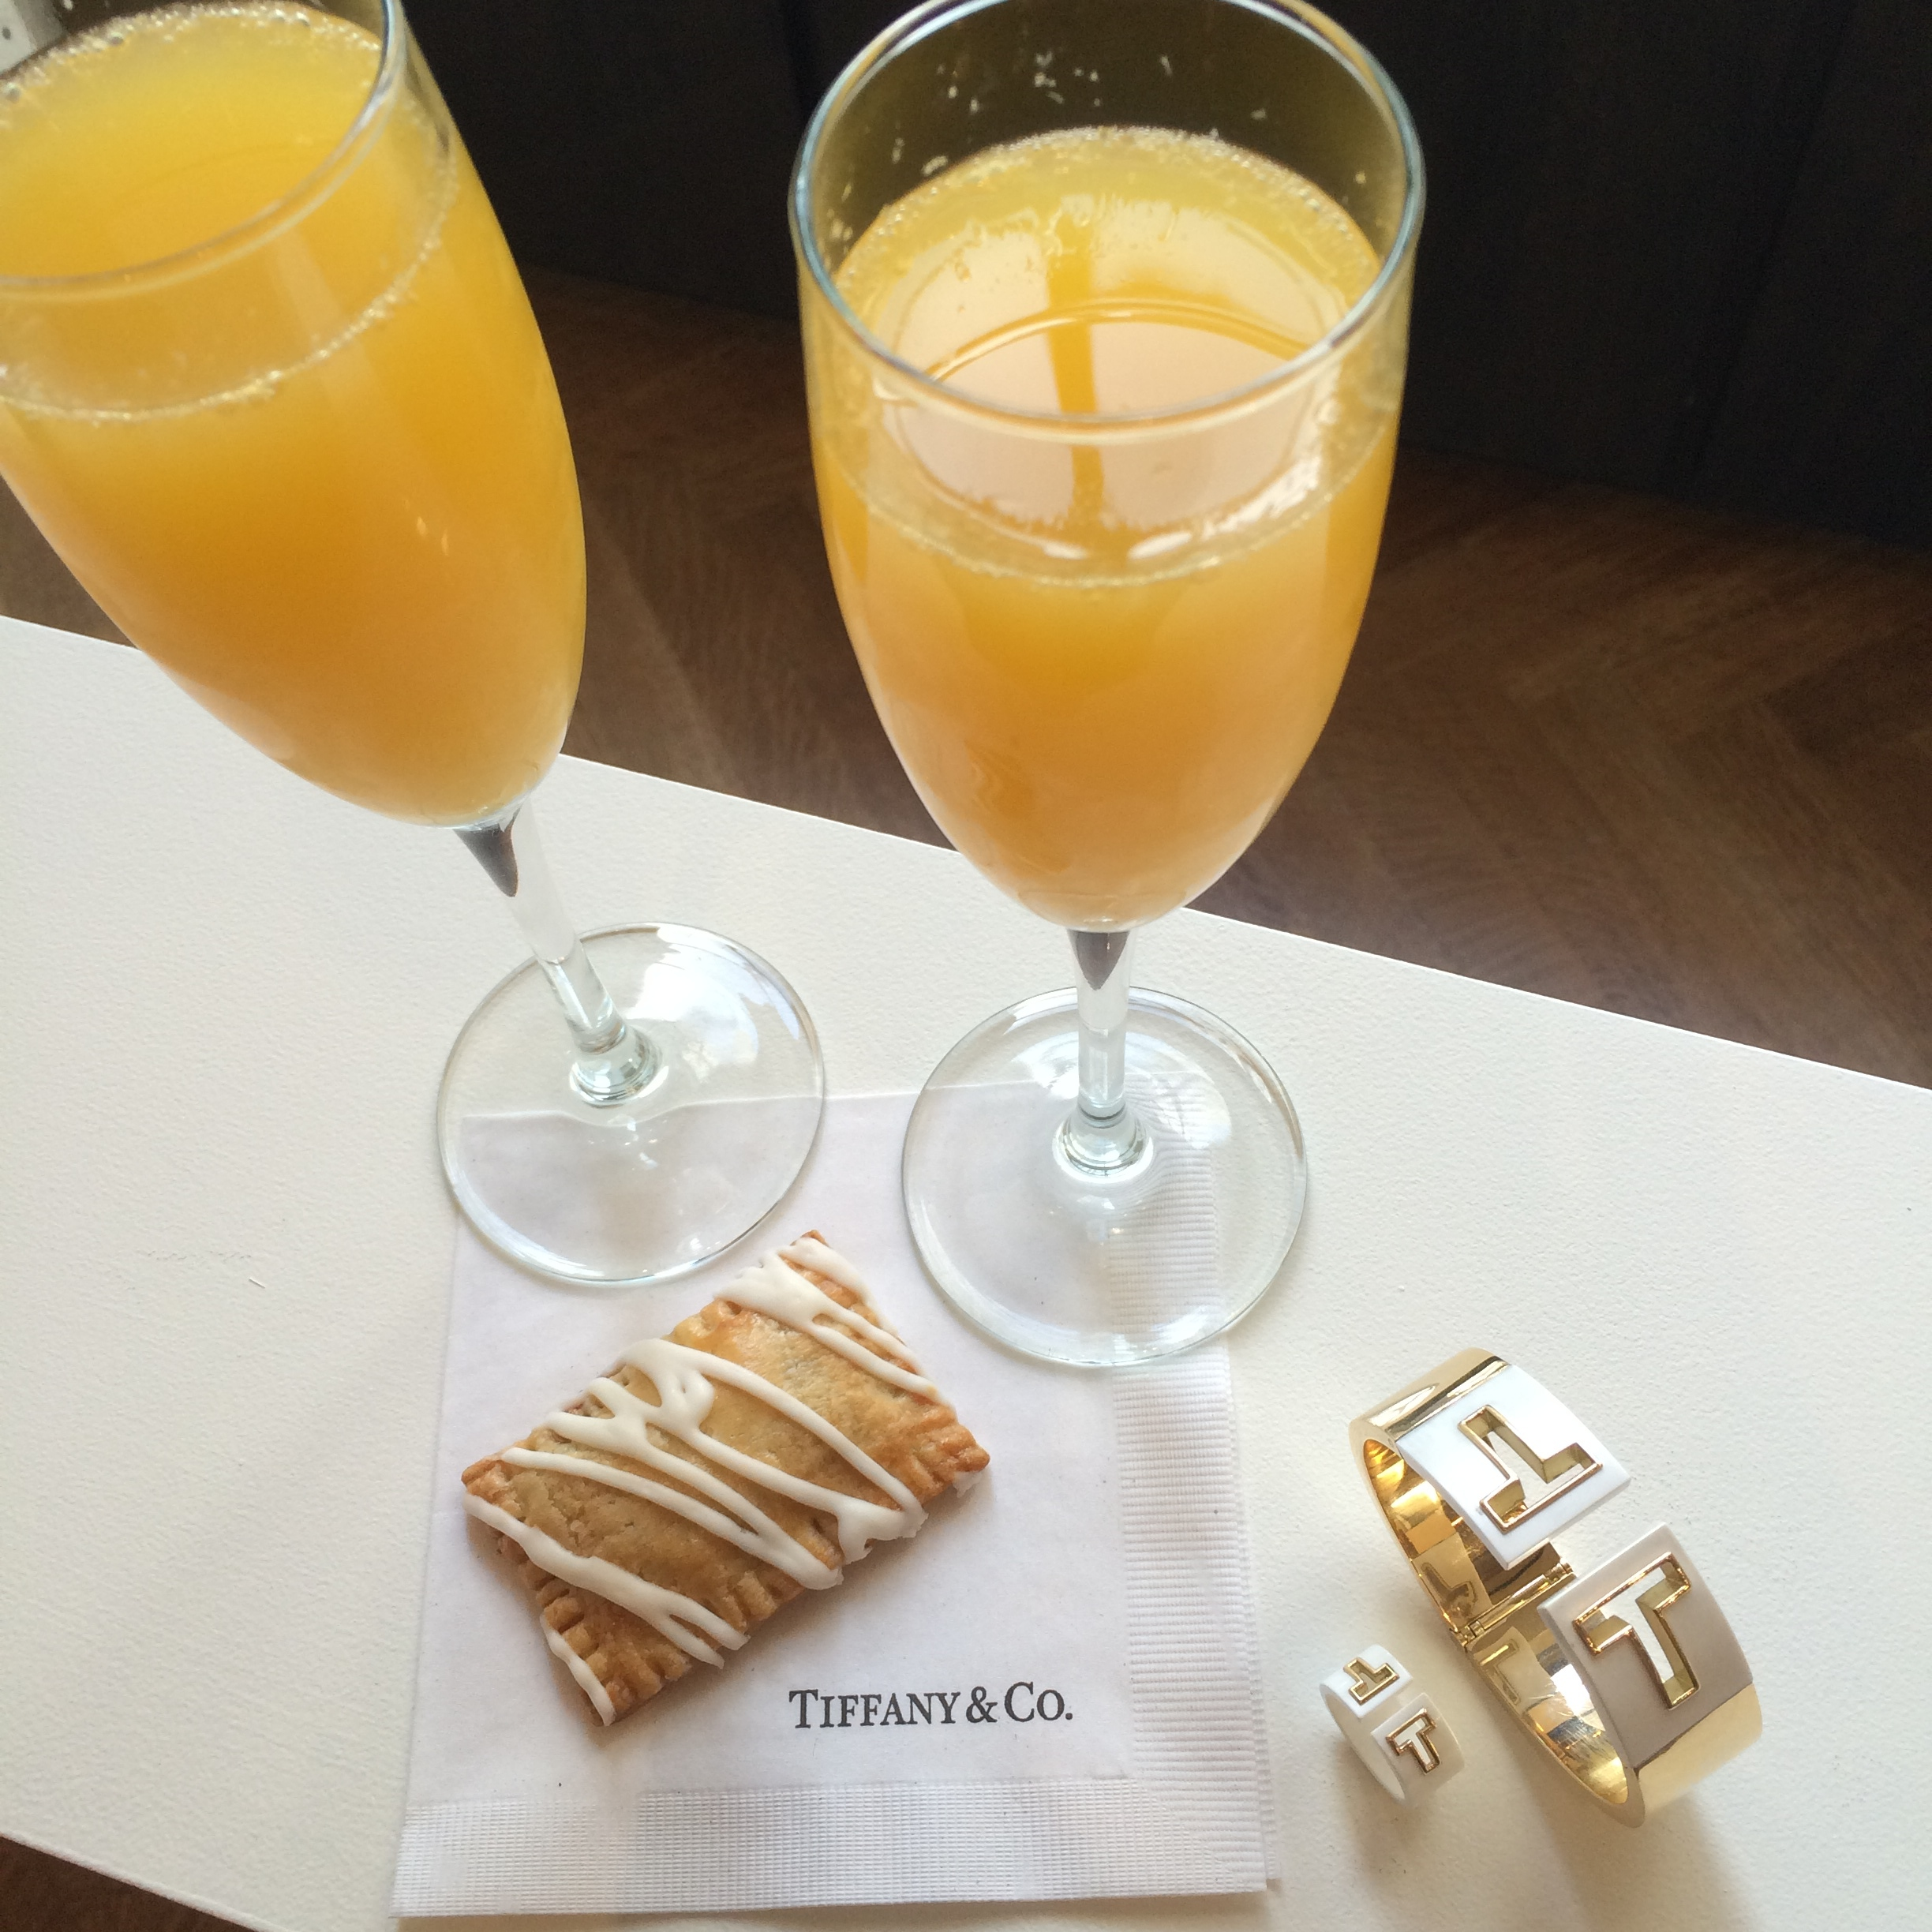 #Tiffany T + Mimosas + petite poptart = An extra cheerful Morning!